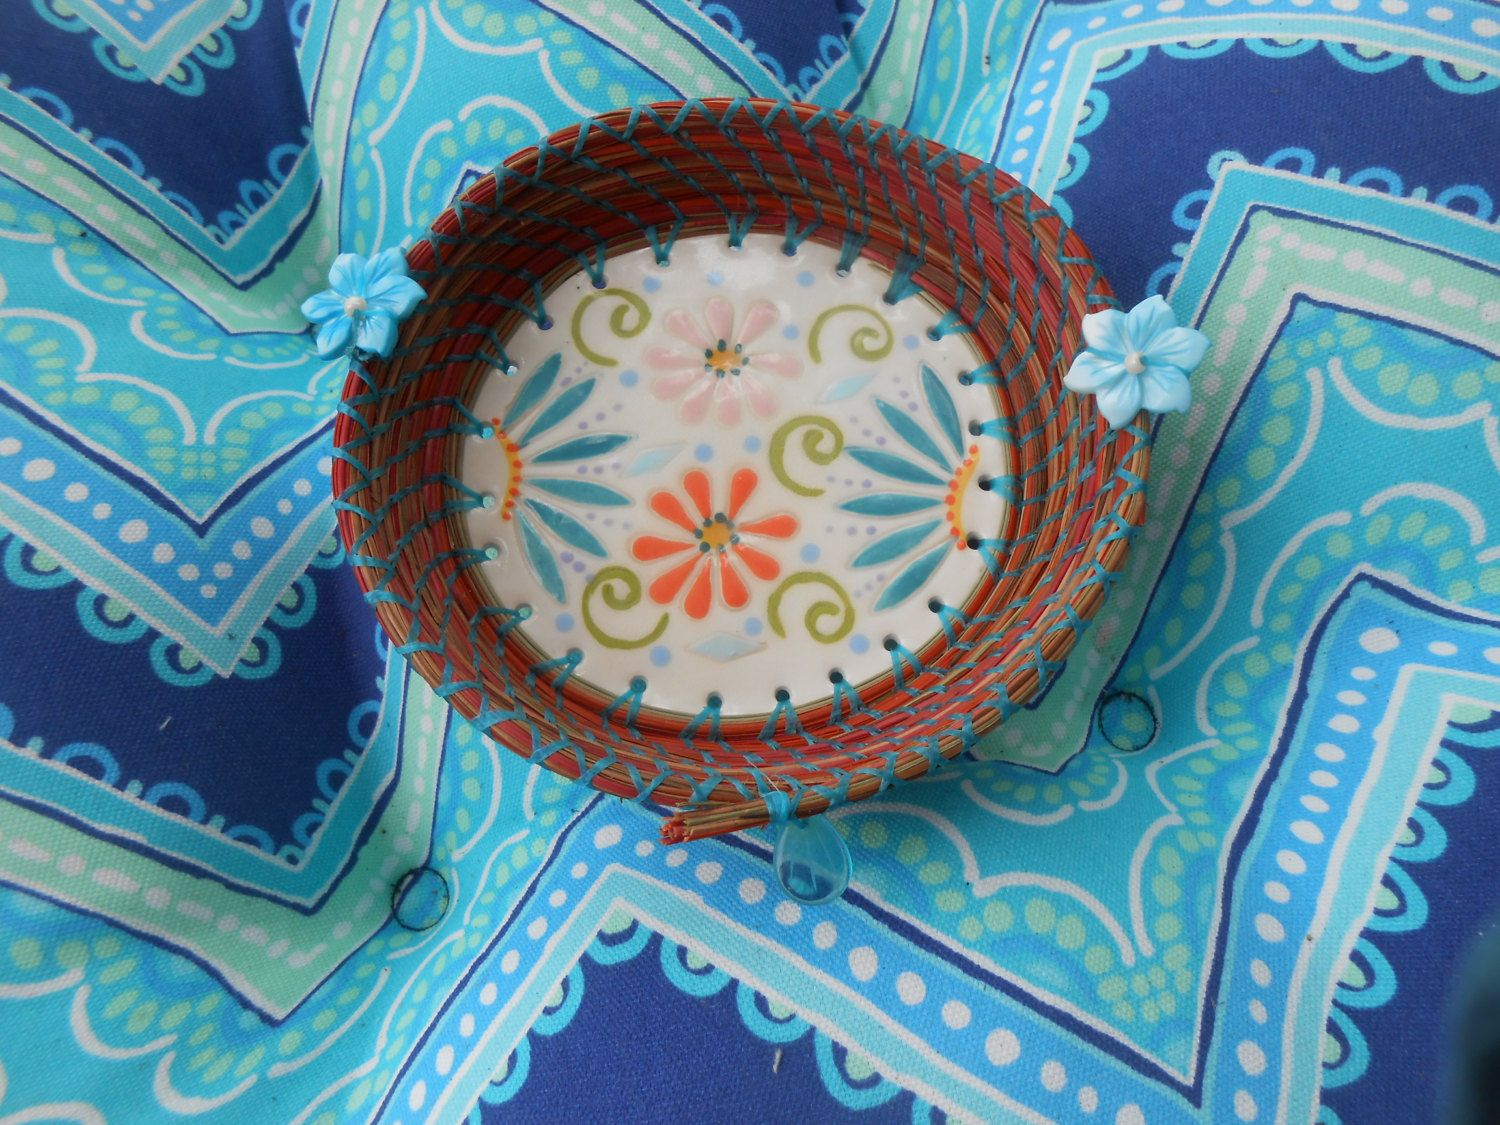 Fun Flowers Pine Needle Basket with glass bead by pammyscrafts on Etsy